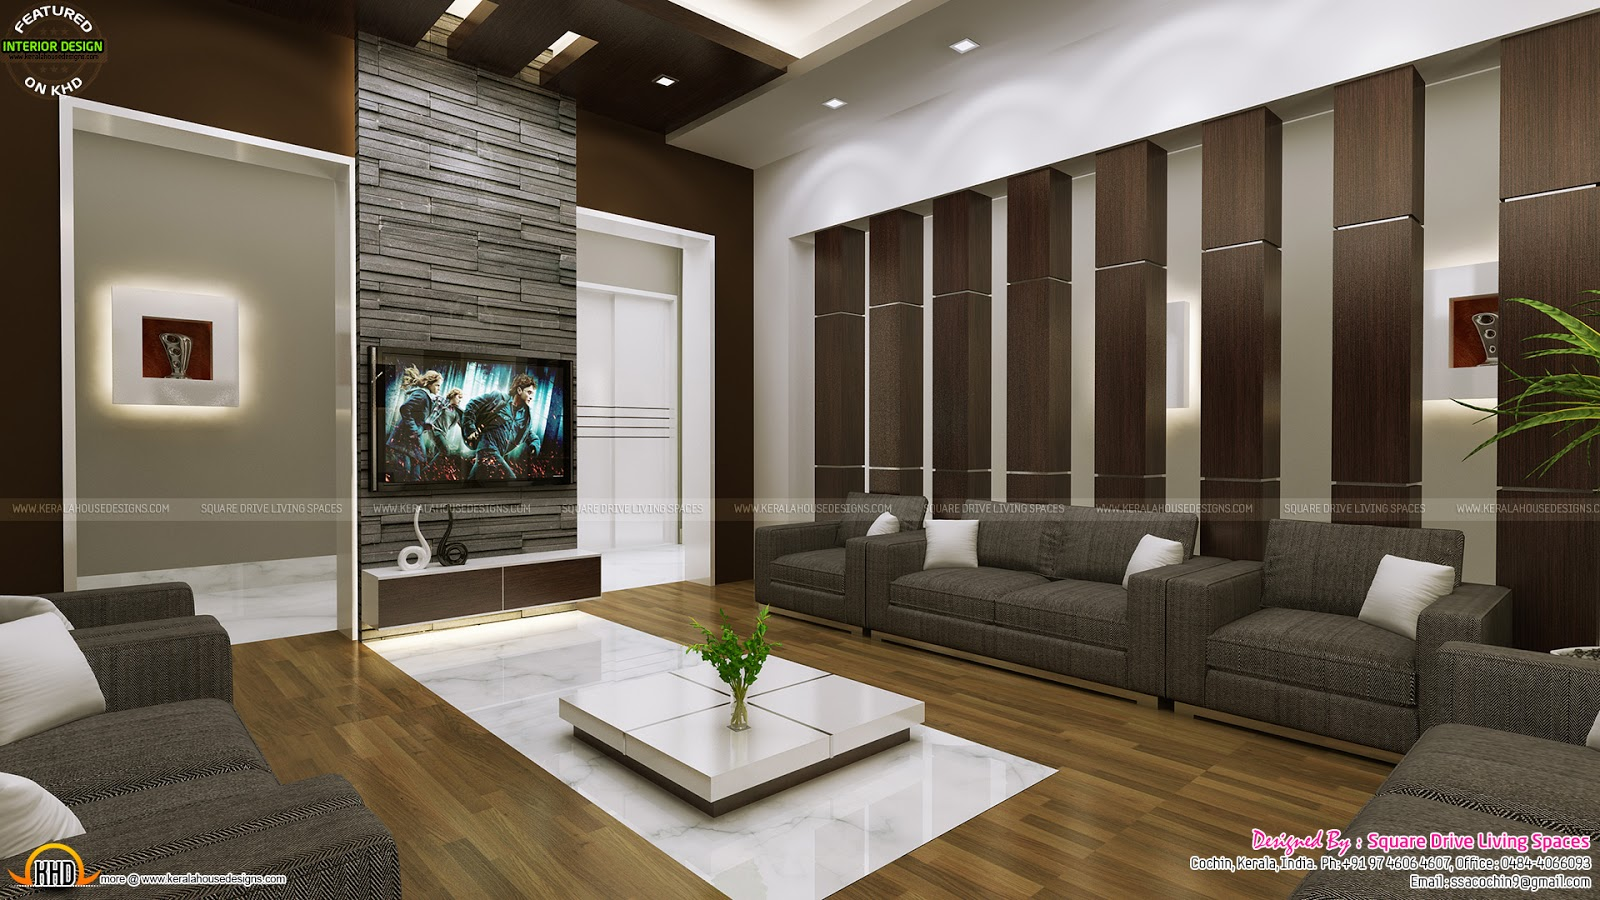 Attractive home interior ideas kerala home design and for Interior design styles living room 2015